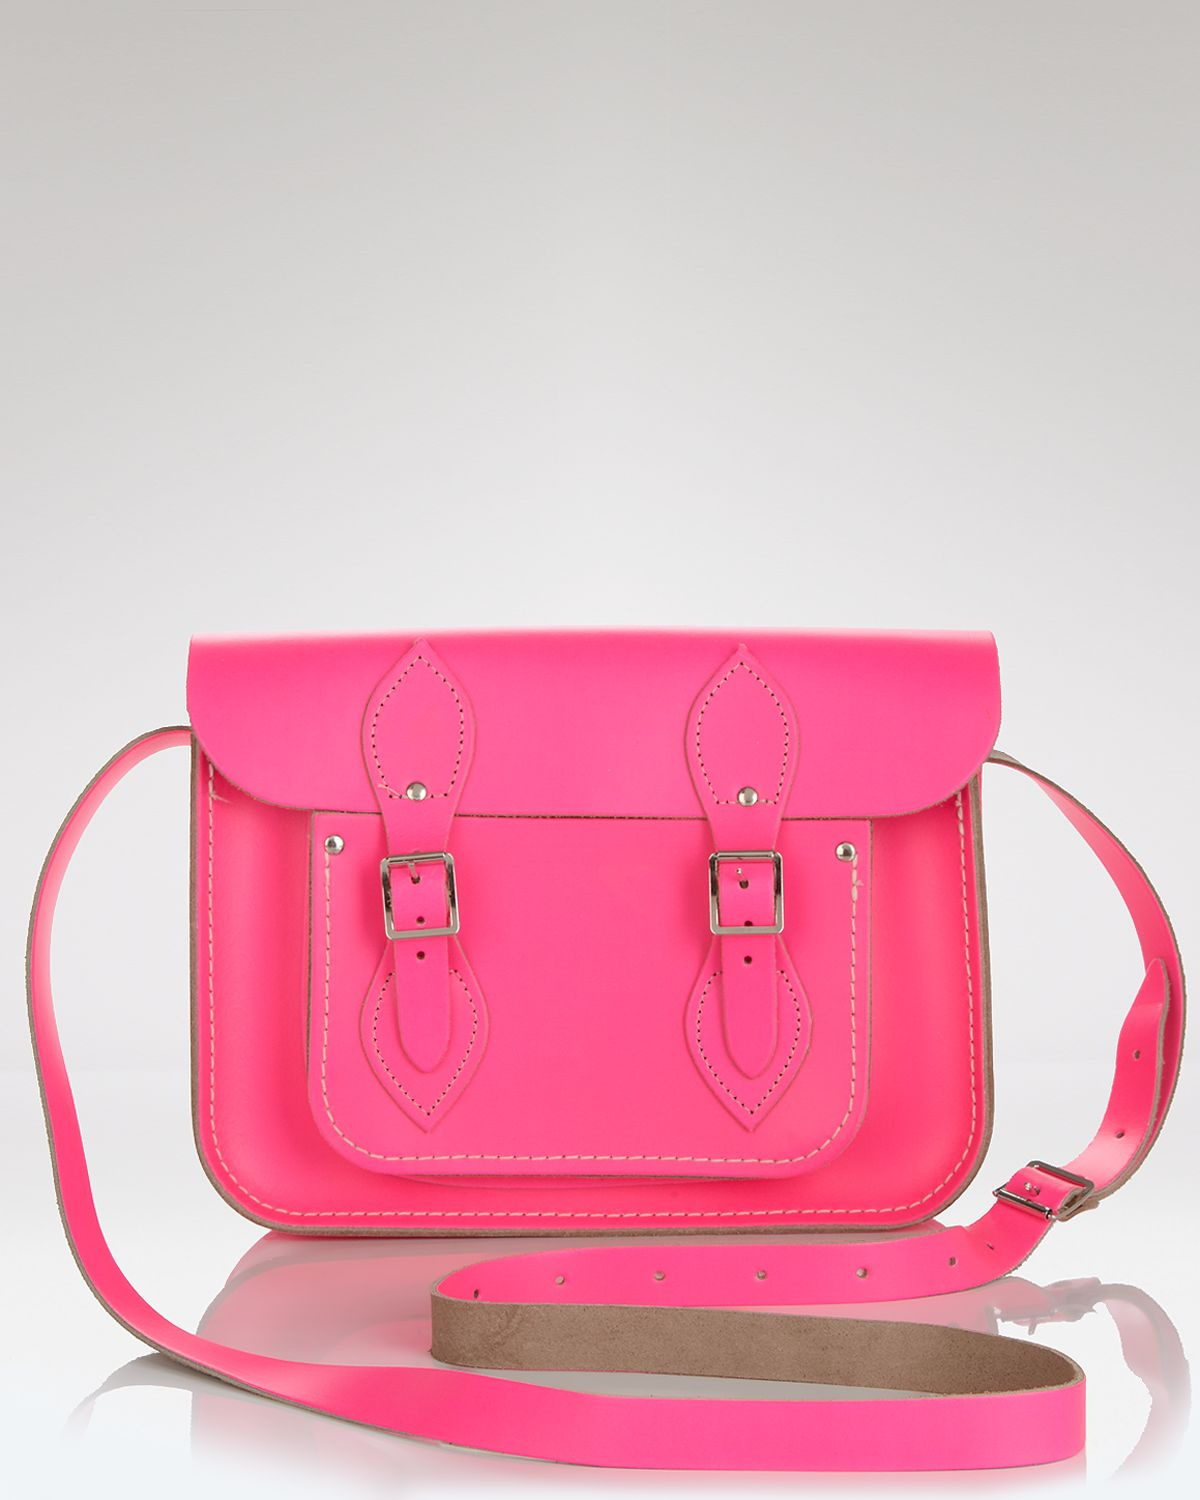 The cambridge satchel company satchel